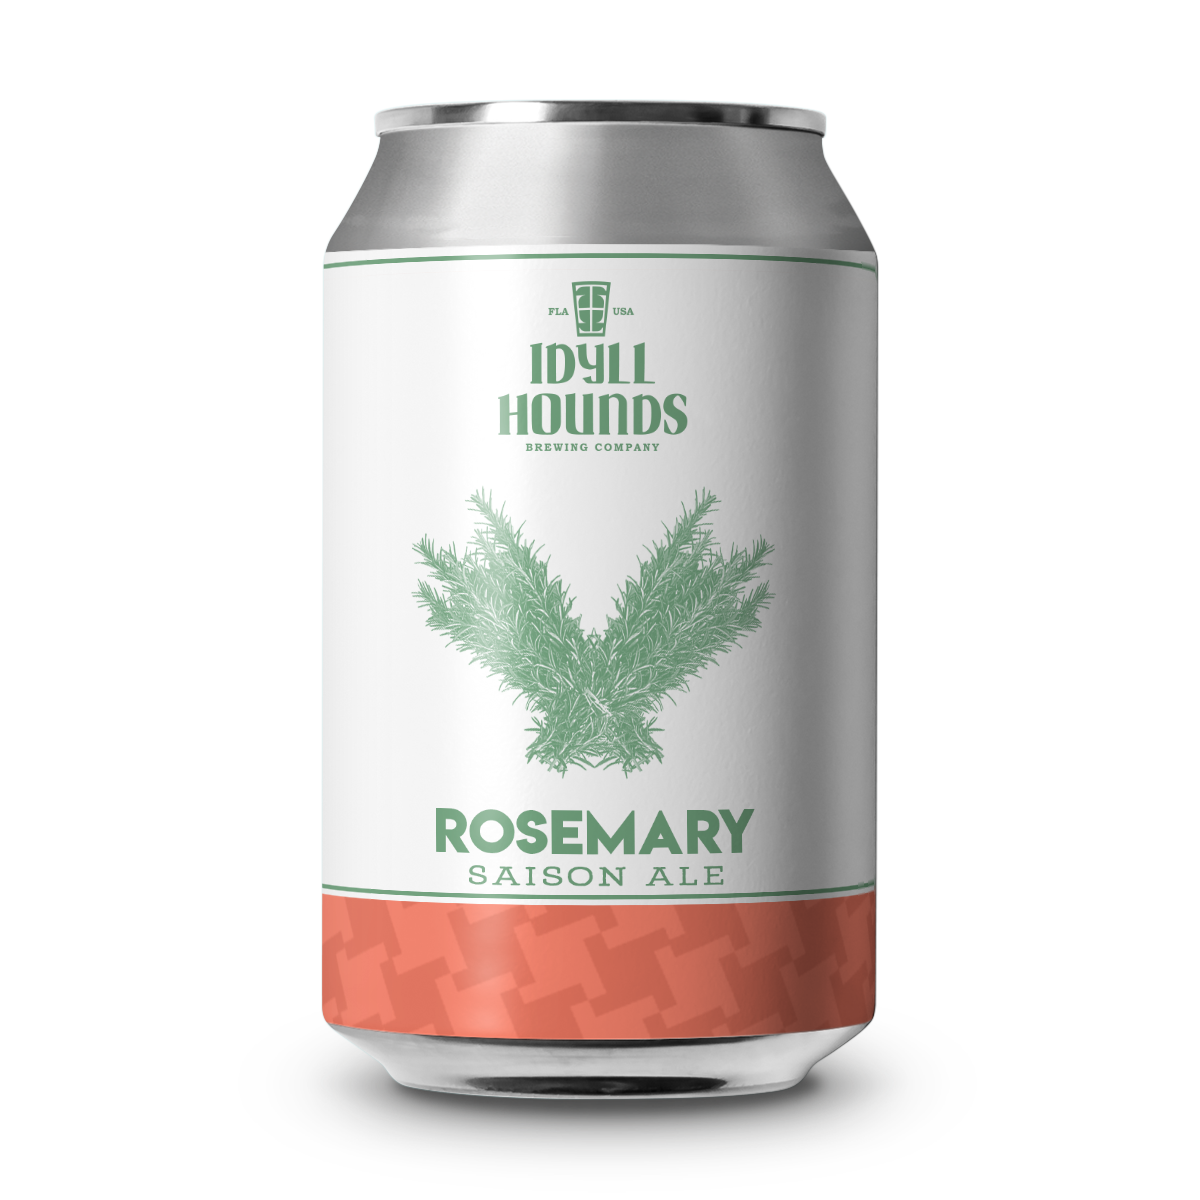 https://www.idyllhoundsbrewingcompany.com/wp-content/uploads/2021/02/Rosemary-Can-Iso.png